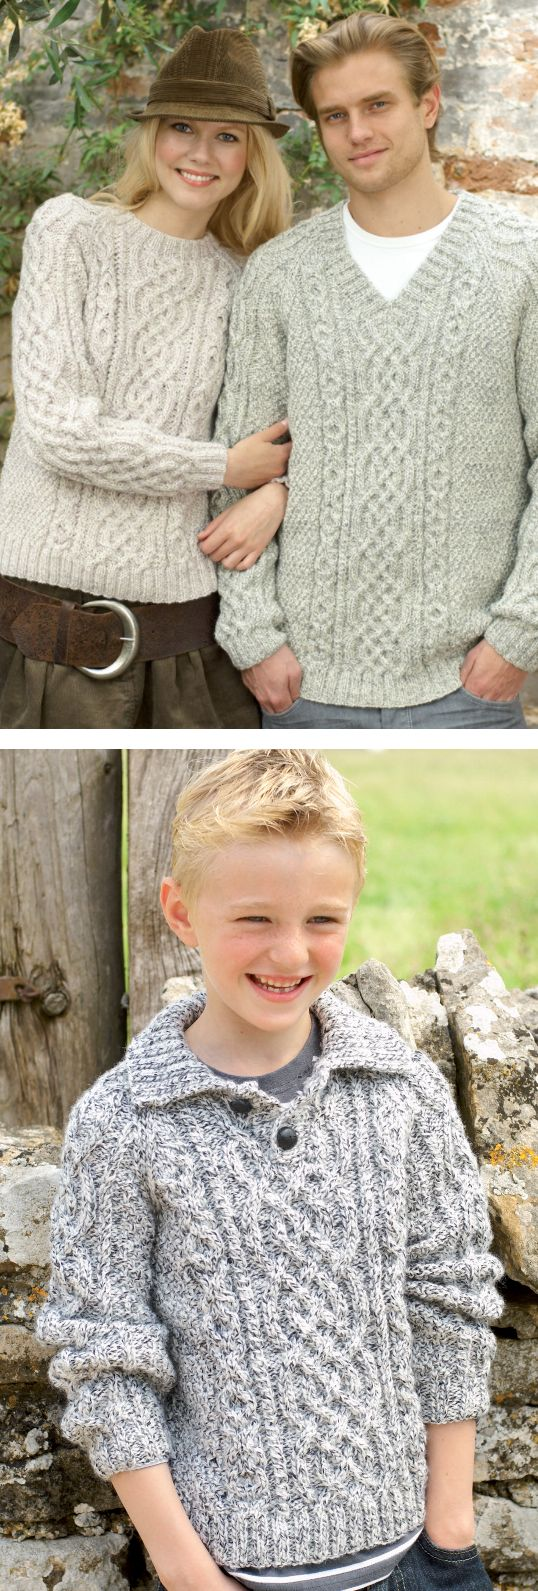 Free Knitting Pattern for Raglan Aran Pullover - Long-sleeved sweater with Celtic style cables framed with  cable XOXOs hugs and kisses. Neckline options include crew neck, v neck and collar with buttons. Adult and child sizes from 61/66cm (24/26″) to 112/117cm (44/46″) chest. Designed by Sirdar